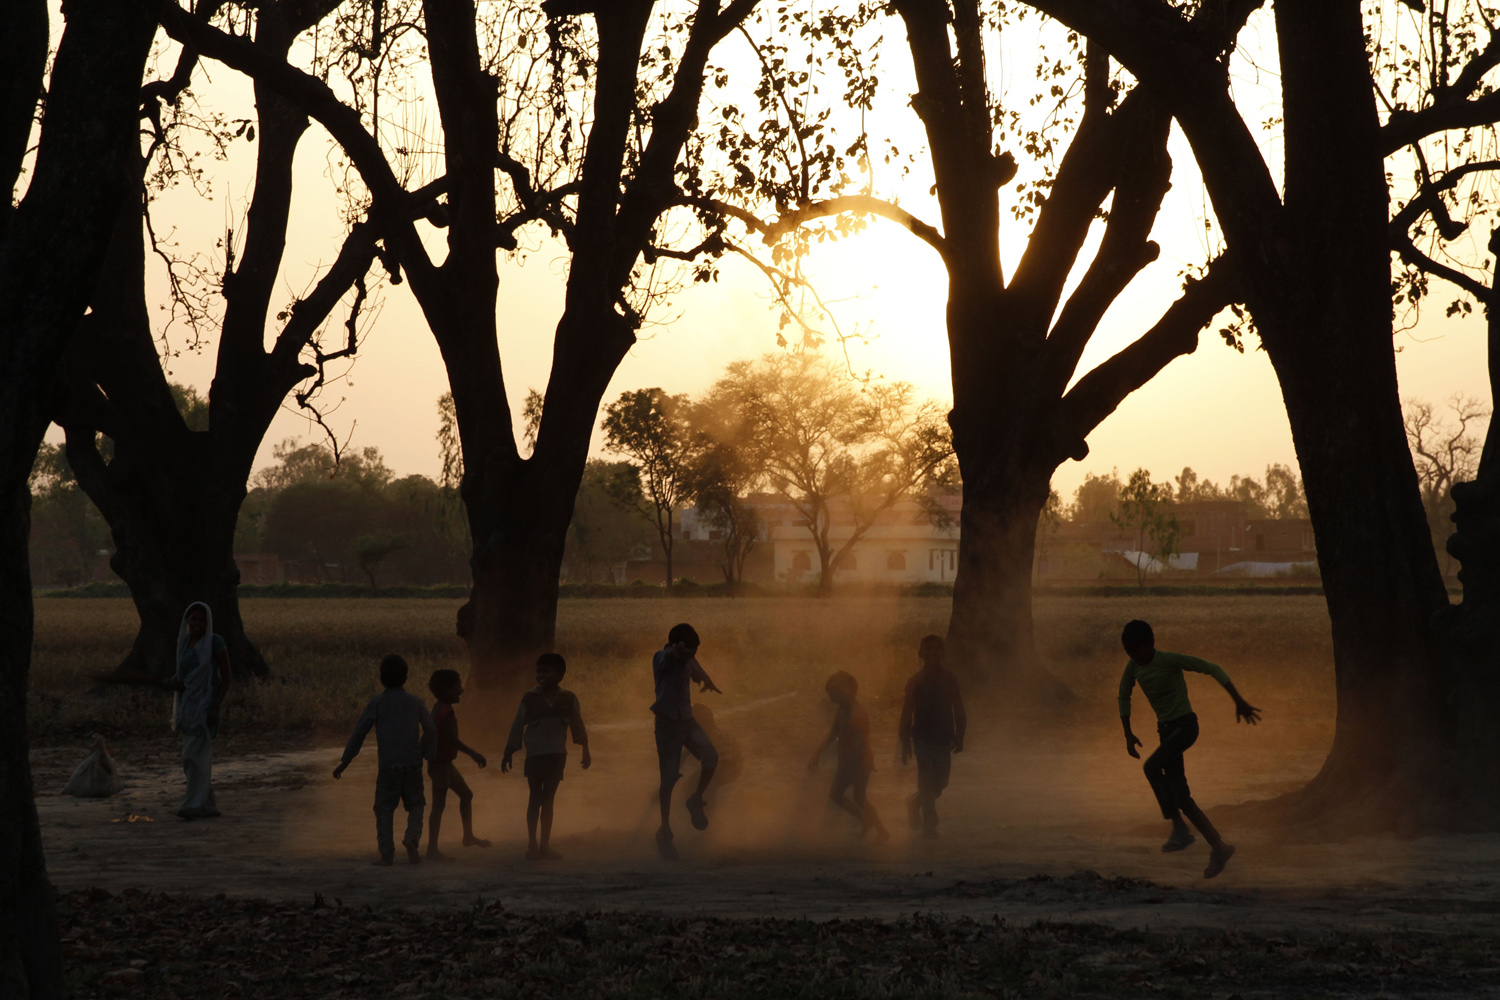 Apr. 7, 2014. Indian children play at Krishna nagar village on the outskirts of Allahabad, India. India started the world's largest election Monday where the country's 814 million electorate will vote in stages over the next five weeks.